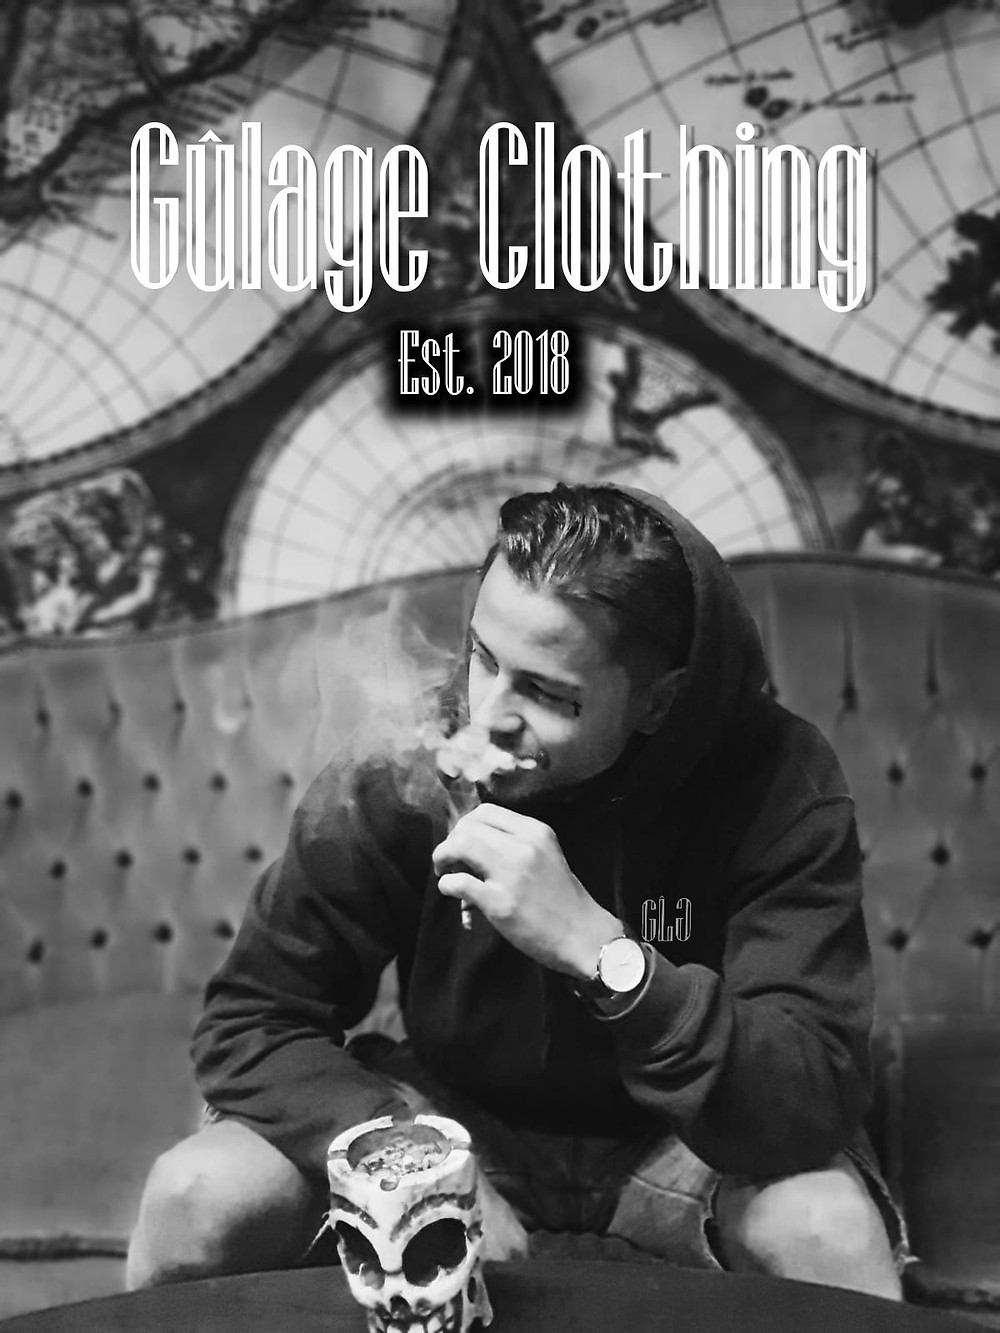 Smoking in our Gulage Clothing Hoodie